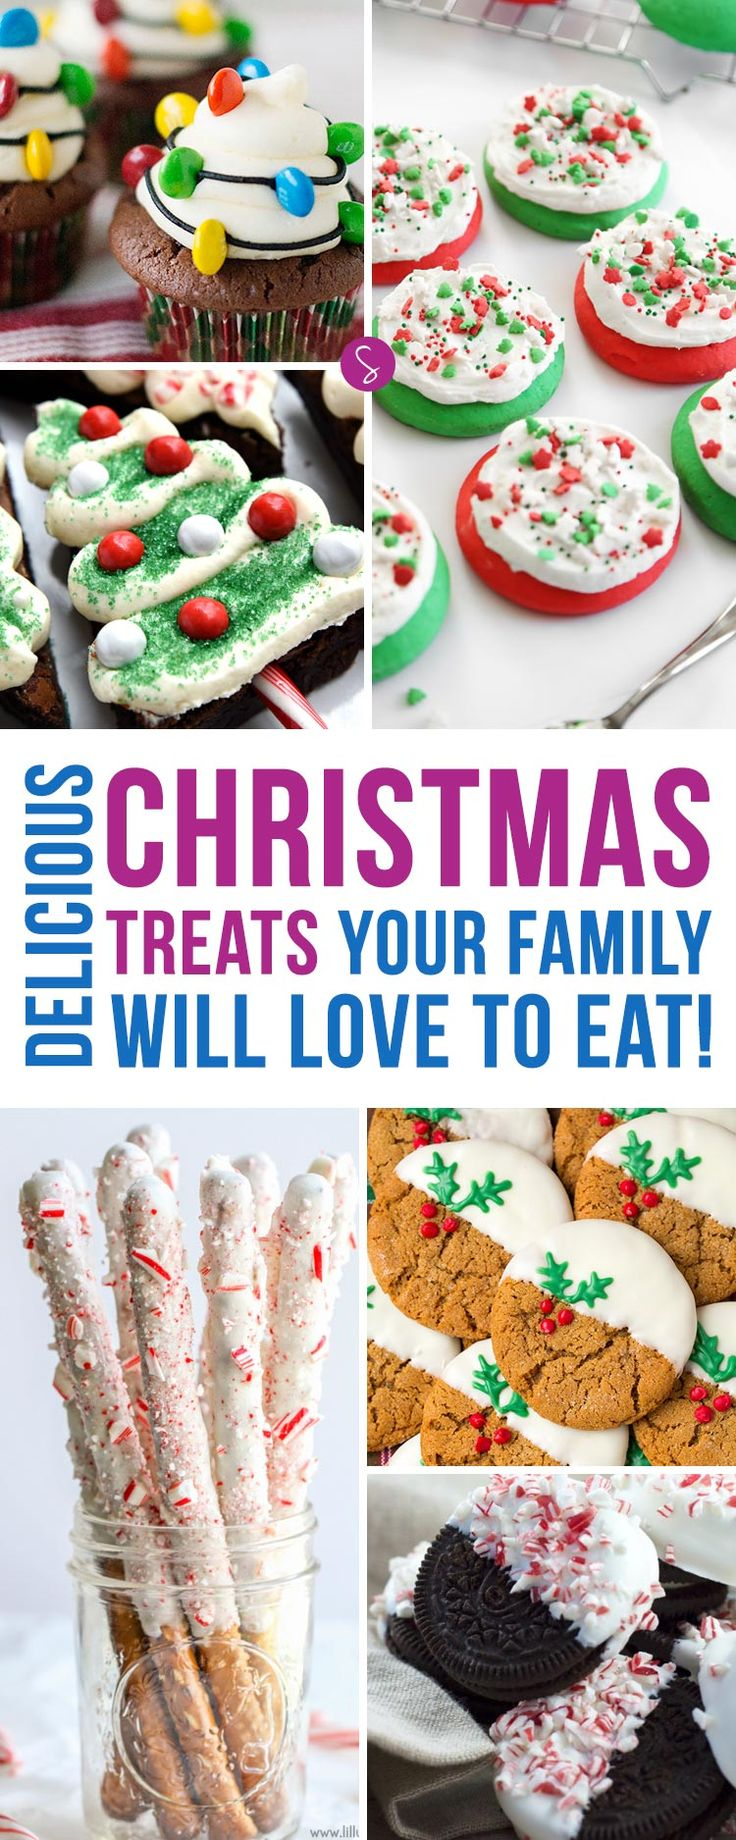 Oh my these Christmas Treats look DELICIOUS! So many ideas for parties and bake sales! Thanks for pinning!